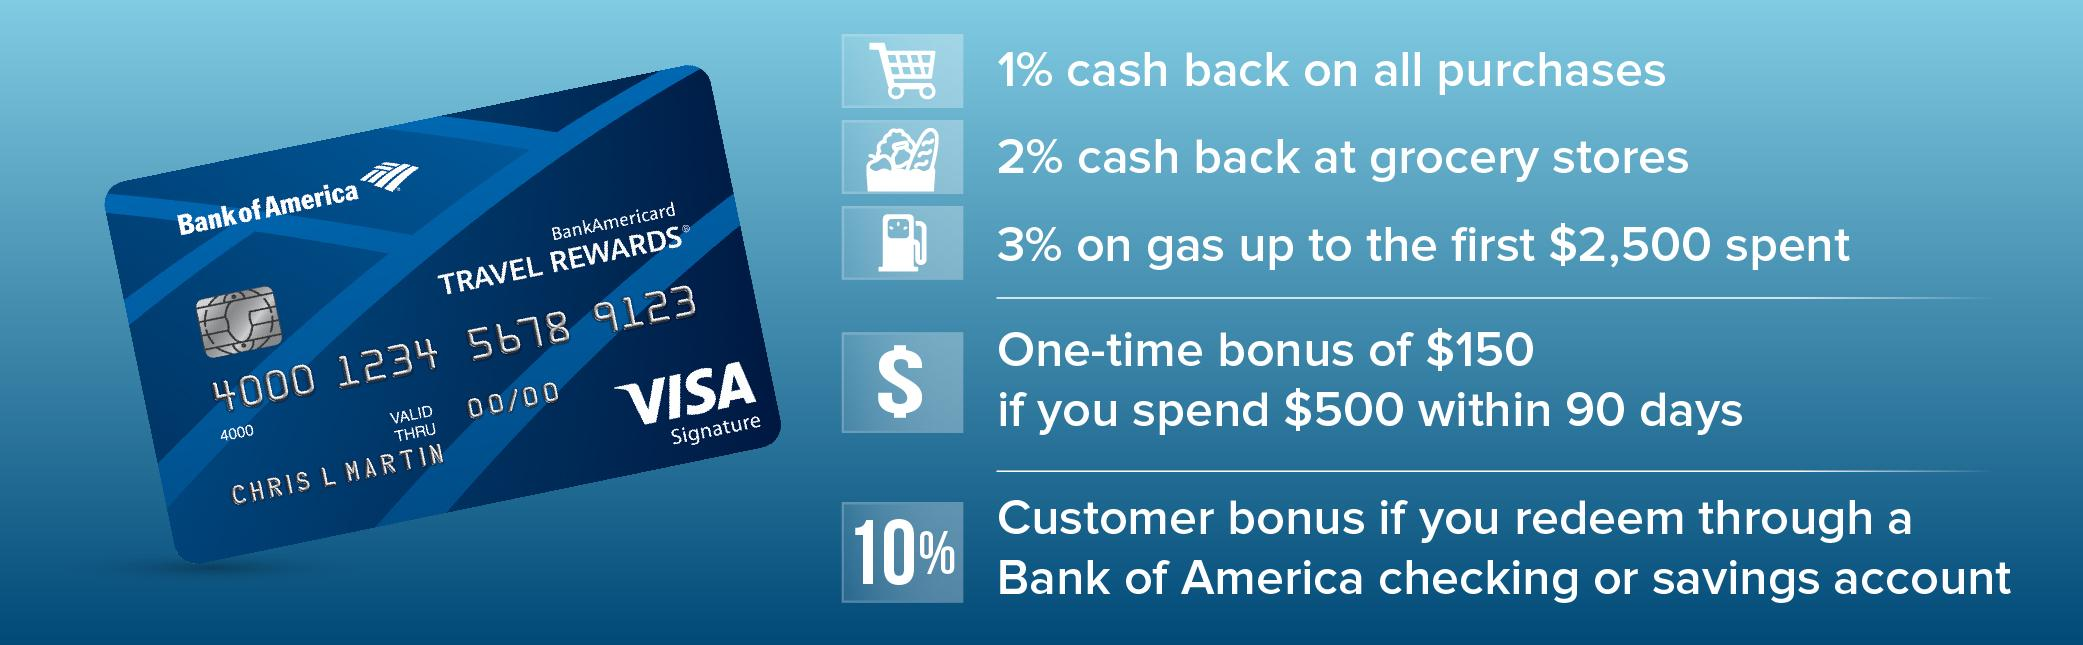 Benefits Of Bank Of America Travel Card